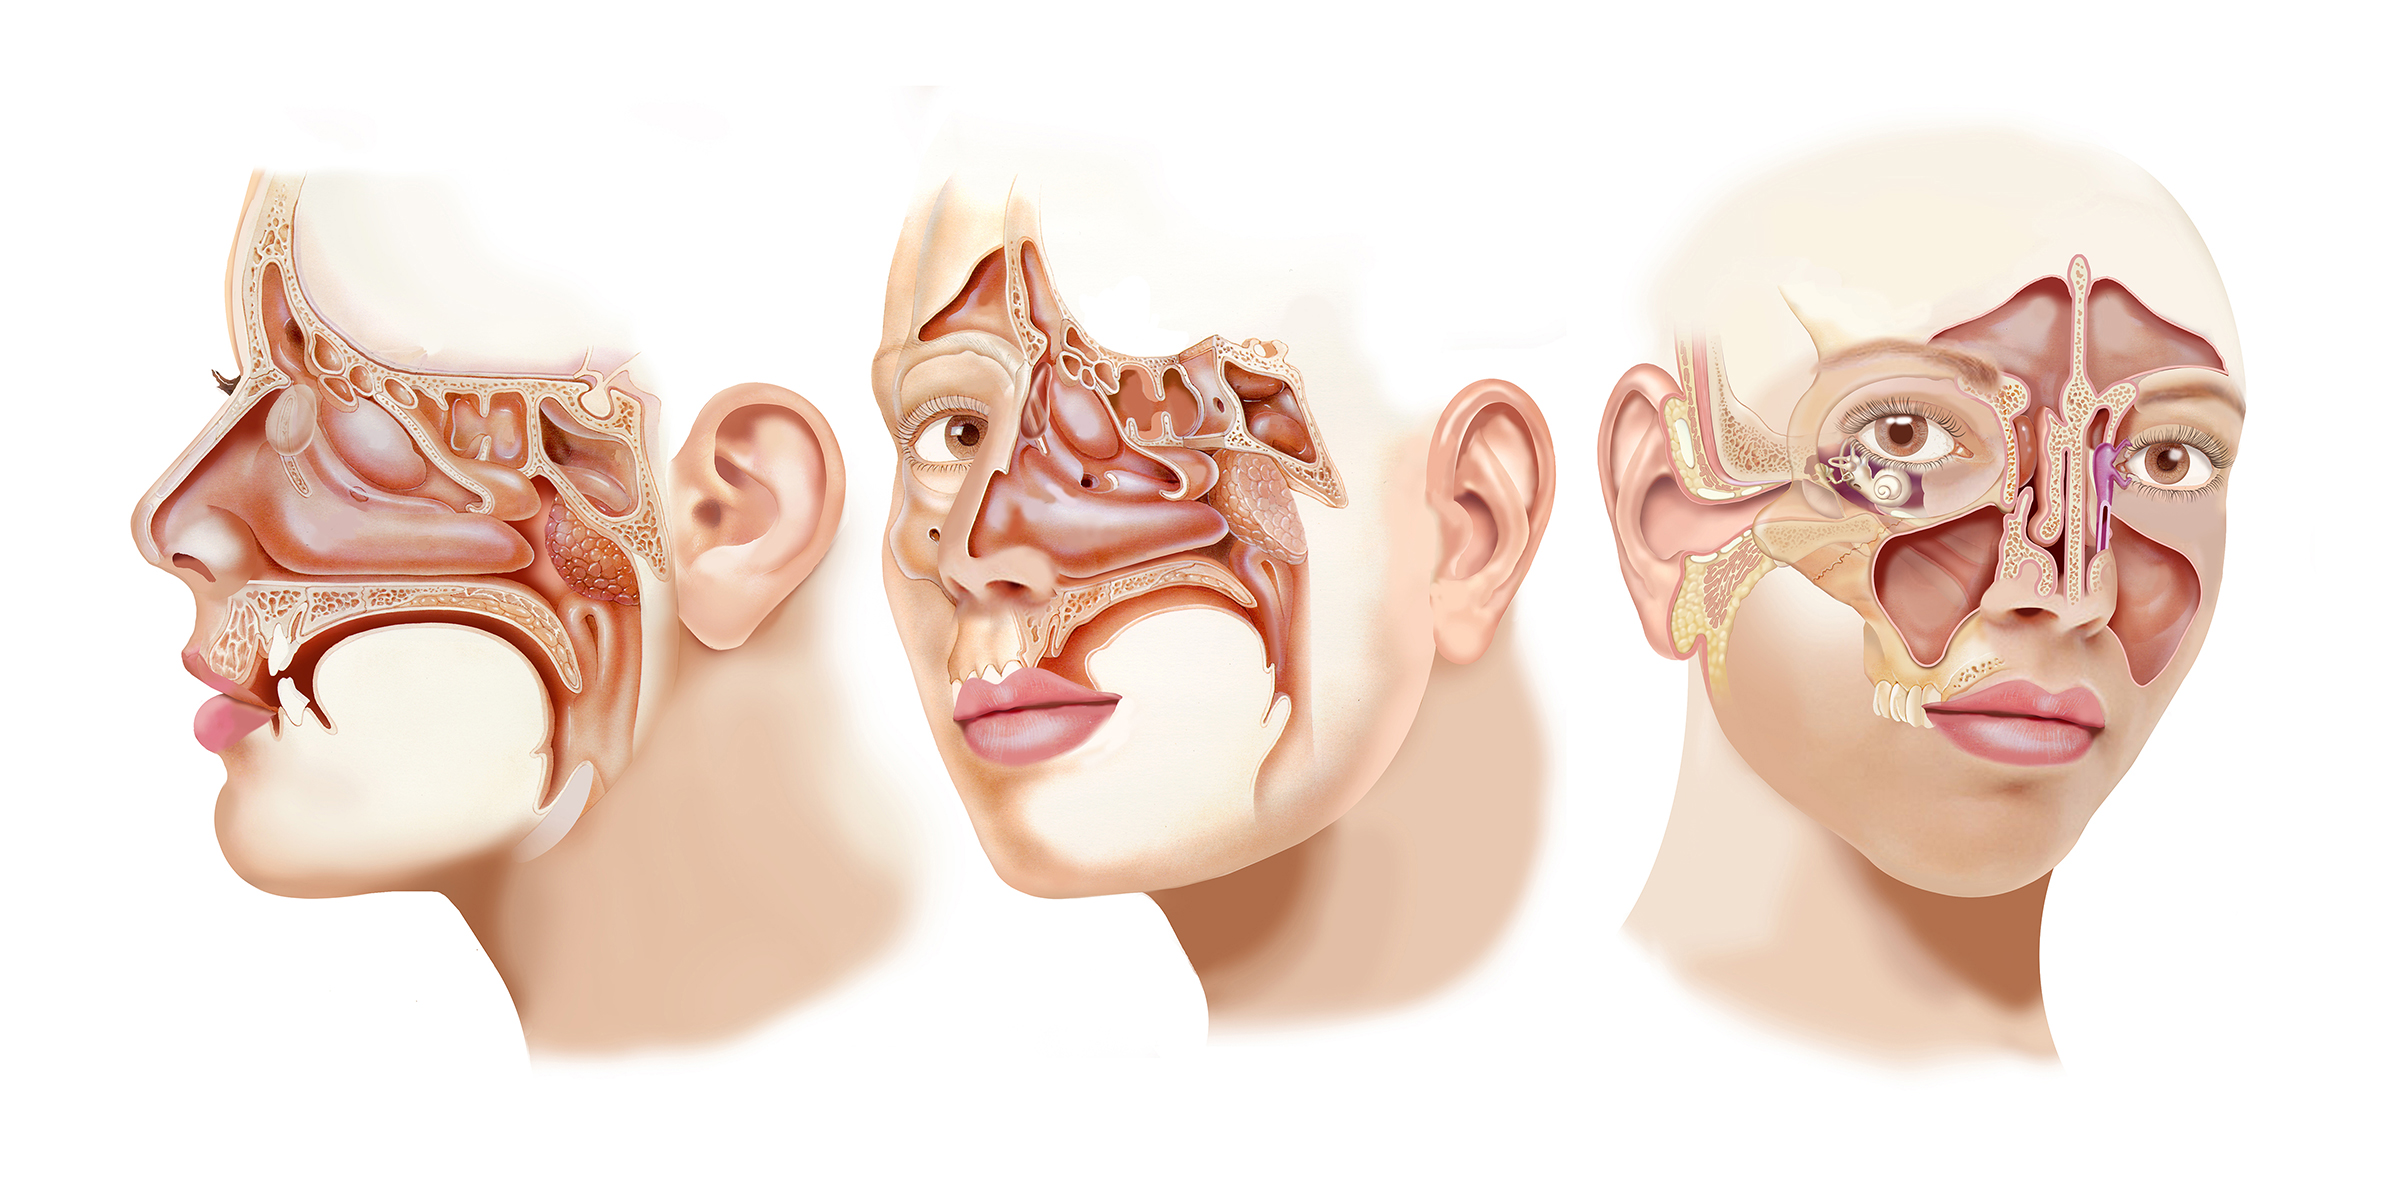 ear canal Archives - Jackie Heda | Biomedical & Scientific Visuals